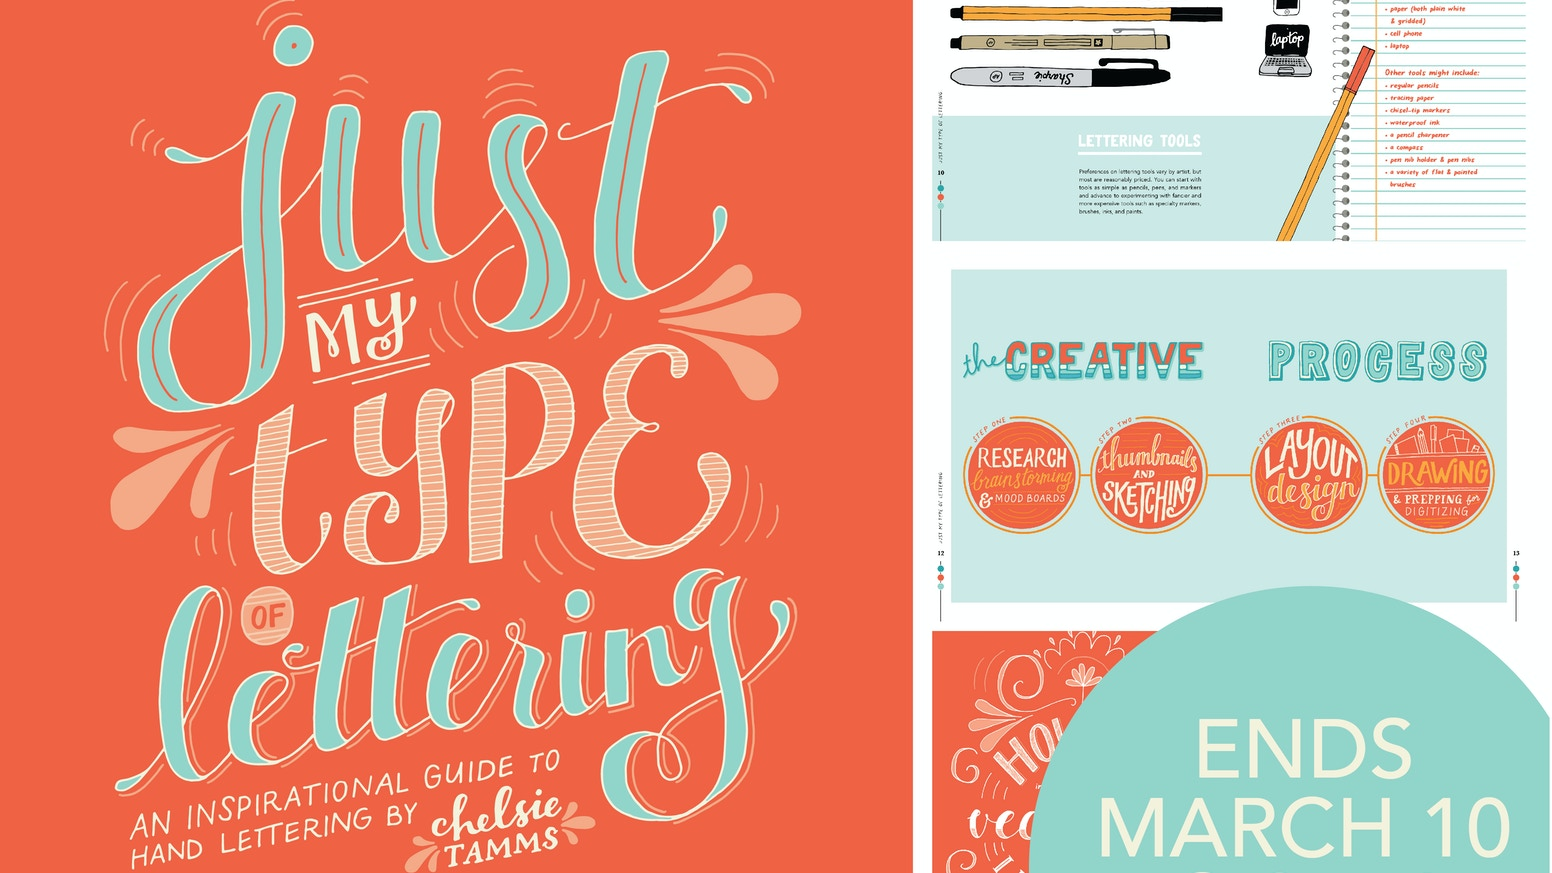 A 40-page, full color inspirational guide to hand lettering, how to make